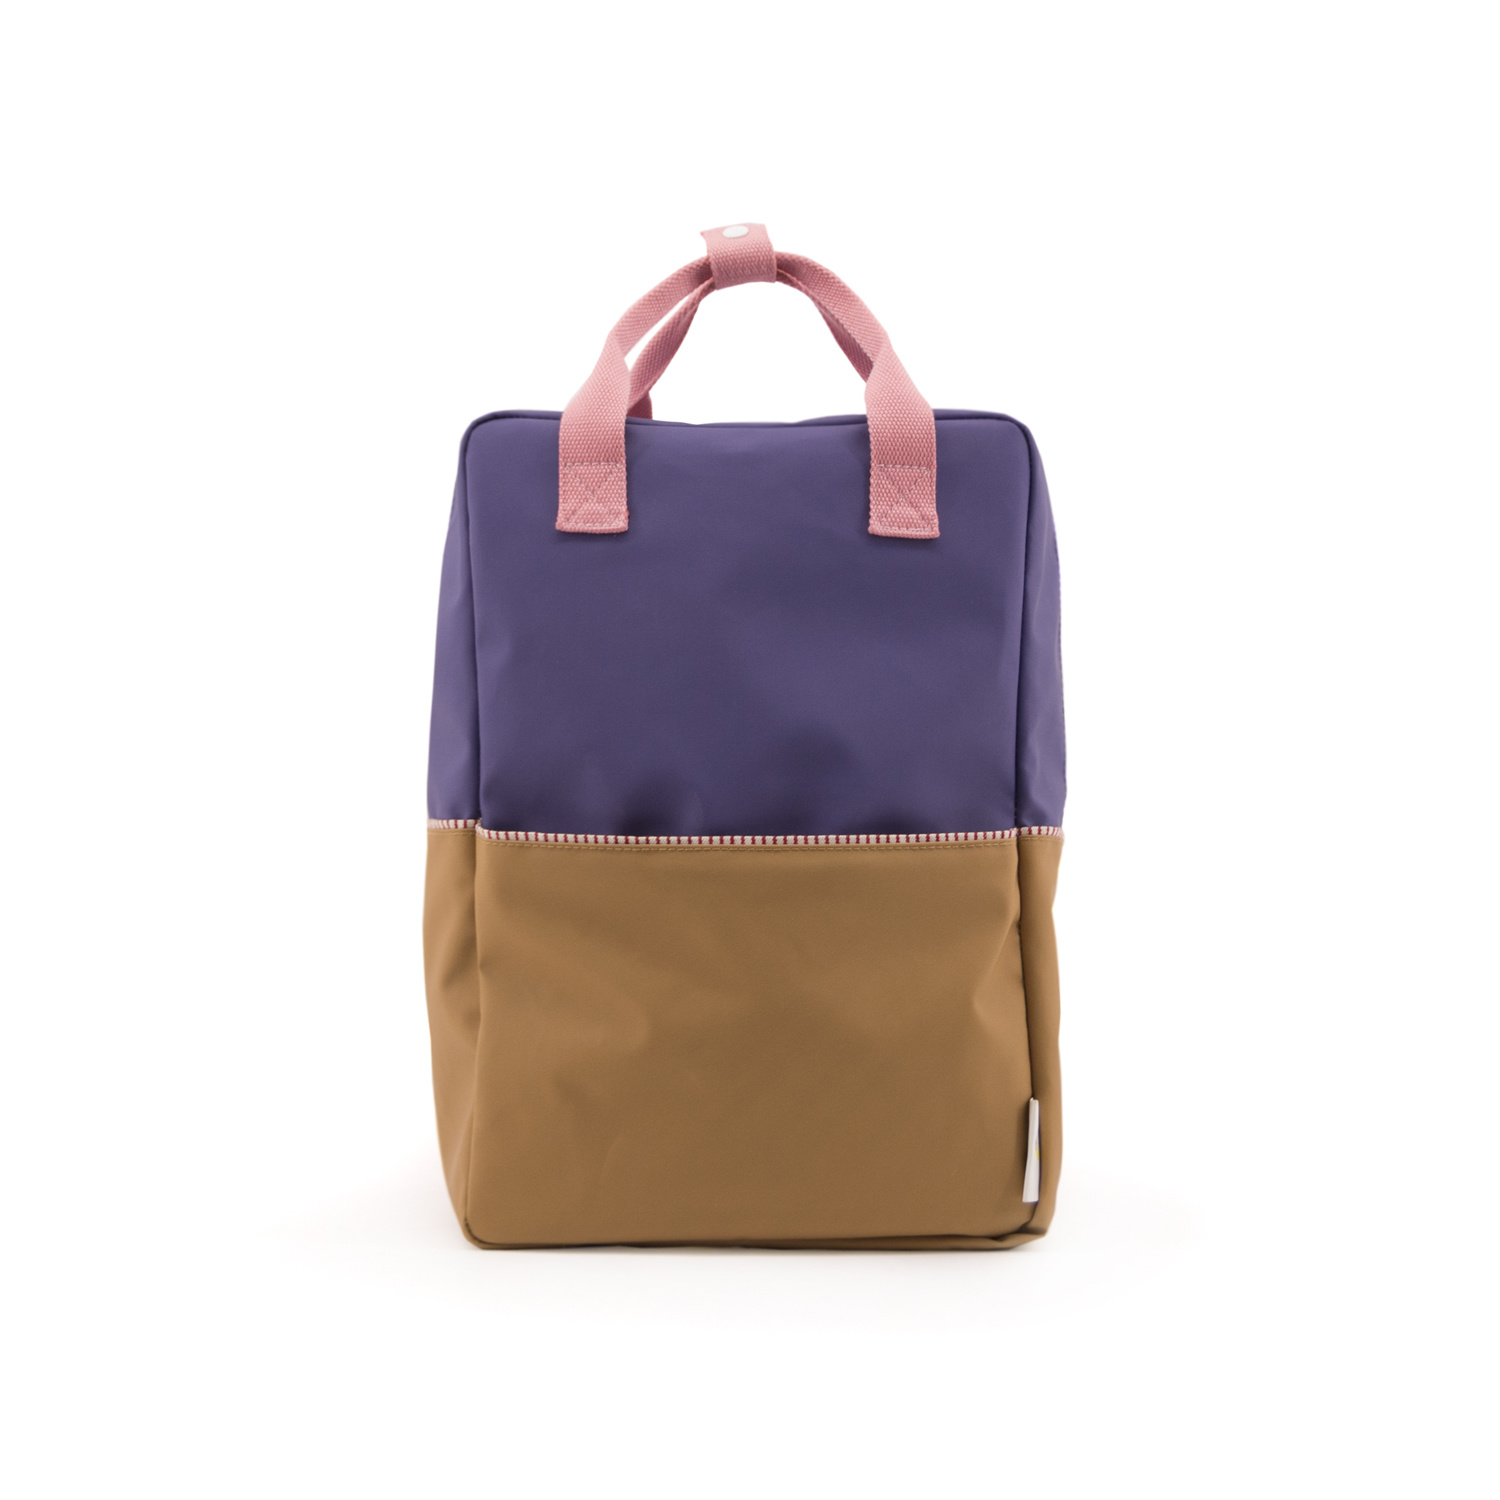 Sticky Lemon Colorblock Backpack Large, Purple and Brown